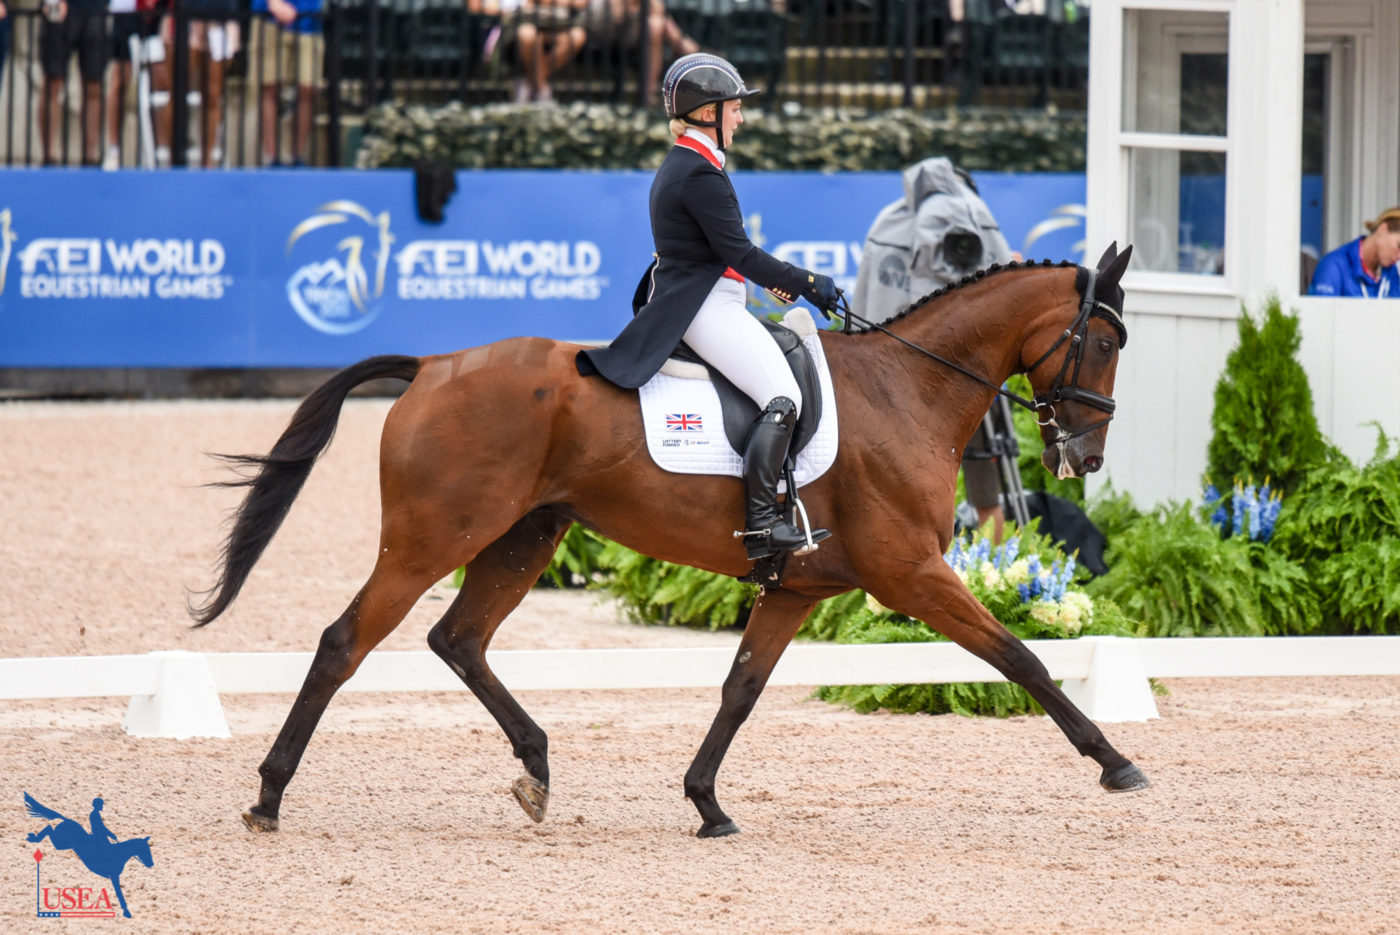 19th - Gemma Tattersall and Arctic Soul (GBR) - 32.40